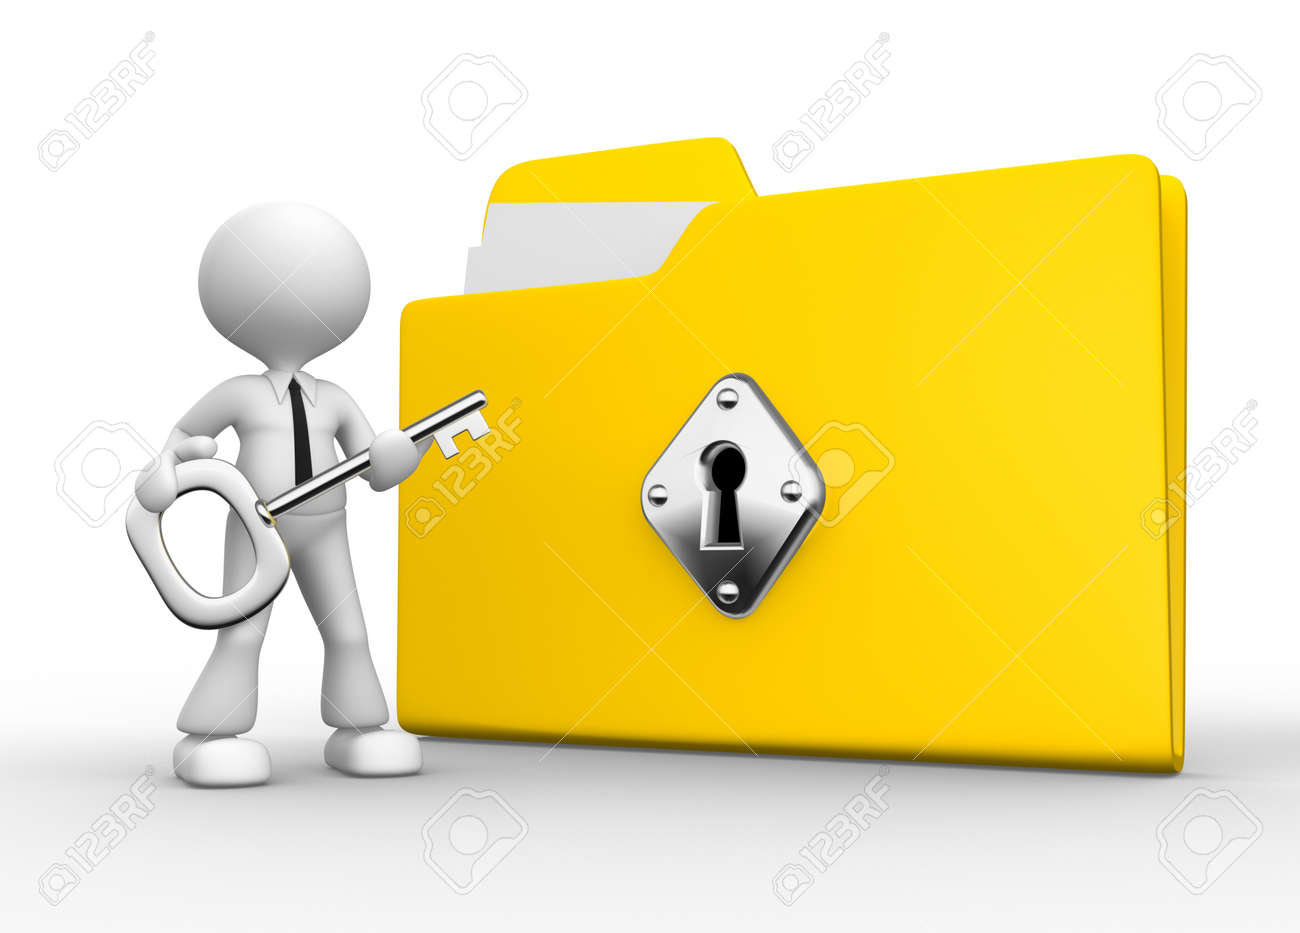 3d people - man, person with a folder and a key. Stock Photo - 18456251